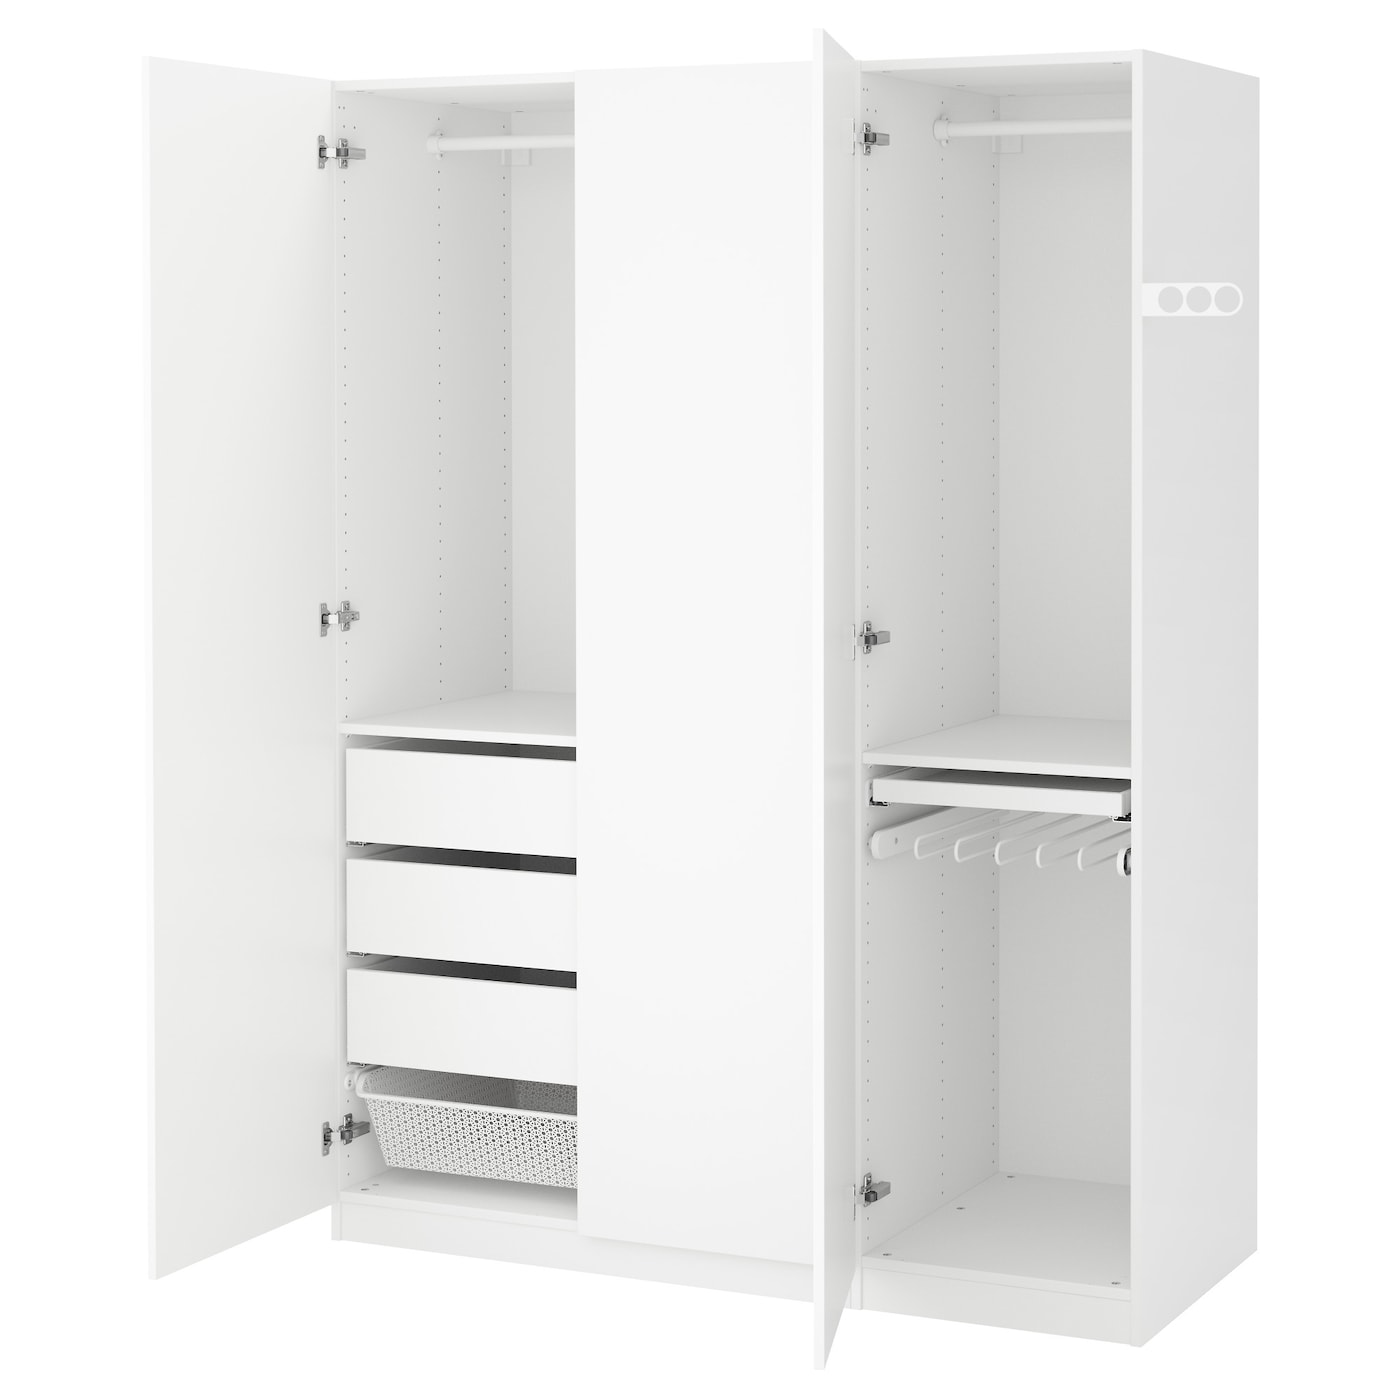 pax wardrobe white tanem white 150x60x201 cm ikea. Black Bedroom Furniture Sets. Home Design Ideas